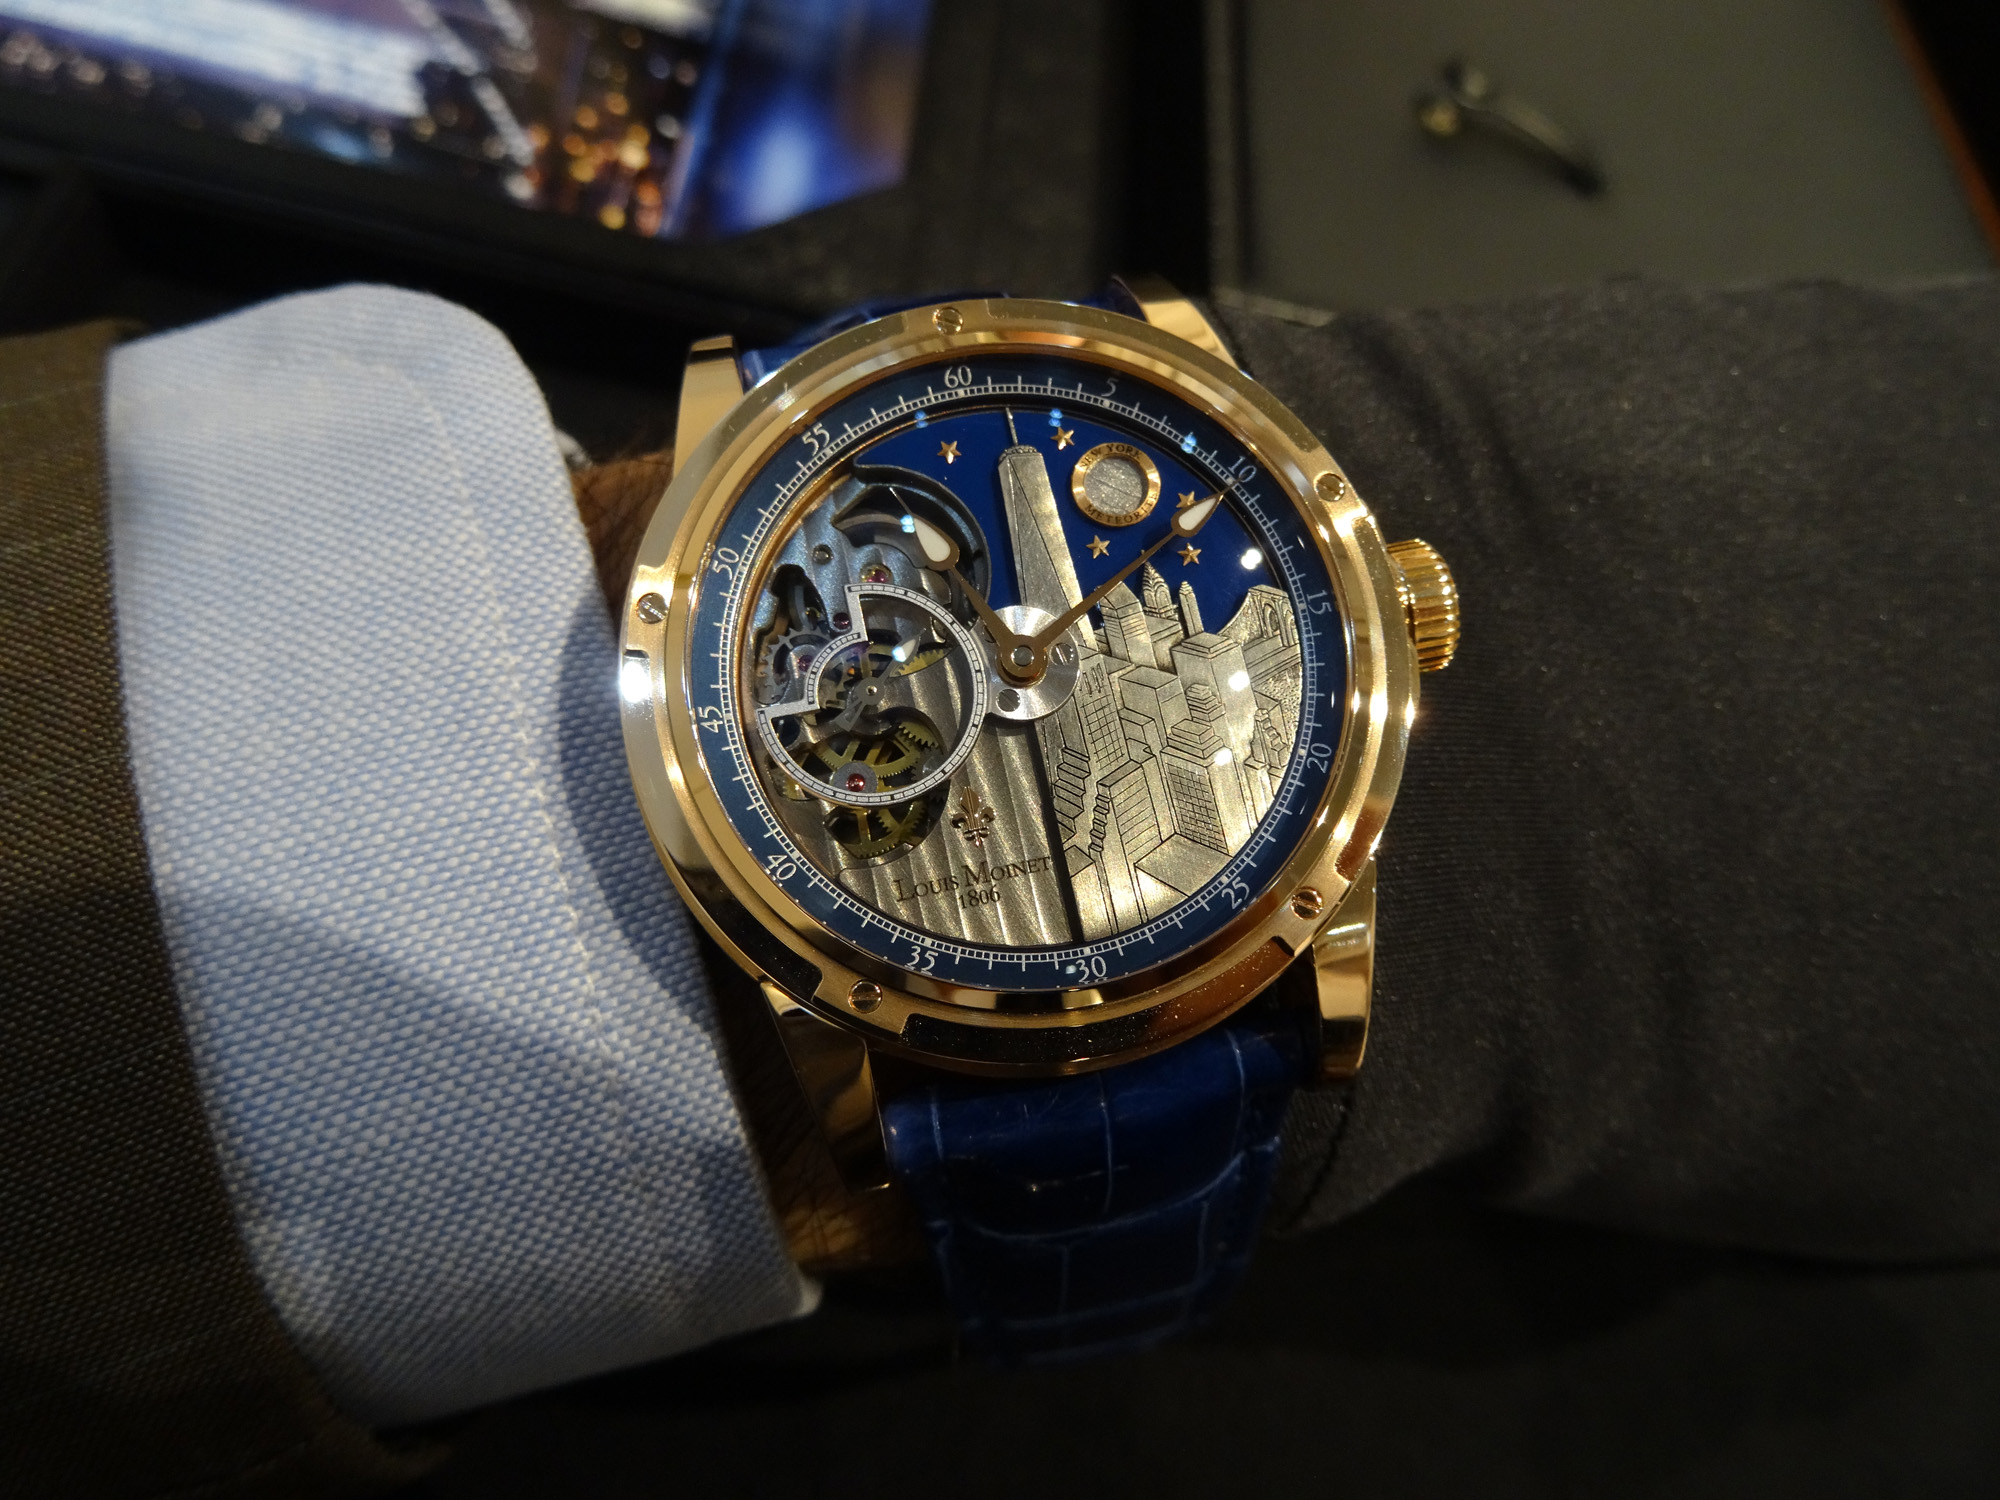 Louis moinet baselworld 2014 as discreet as amazing for Louis moinet watch